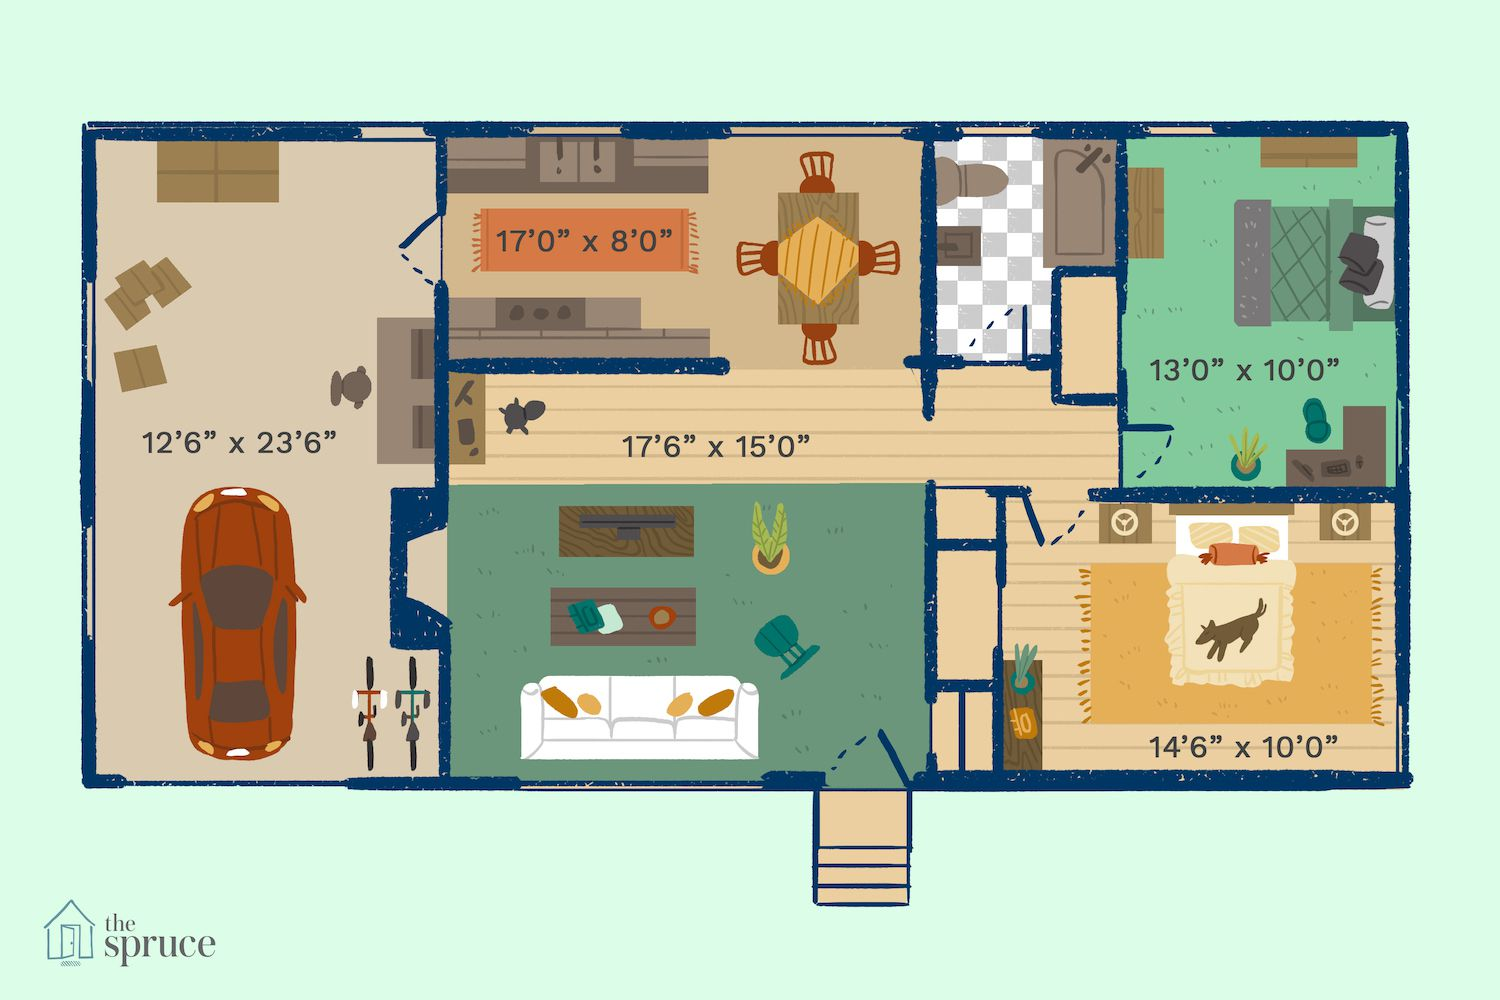 house plans with no garage, ranch house designs, duplex house plans with garage, ranch homes with side garage, ranch house plans no dining room, ranch house blueprints, living room in modern car garage, open house plans with garage, rancher house plans side garage, ranch home with no garage, basement garage, bungalow house plans with garage, ranch house cabin, on ranch house floor plans no garage